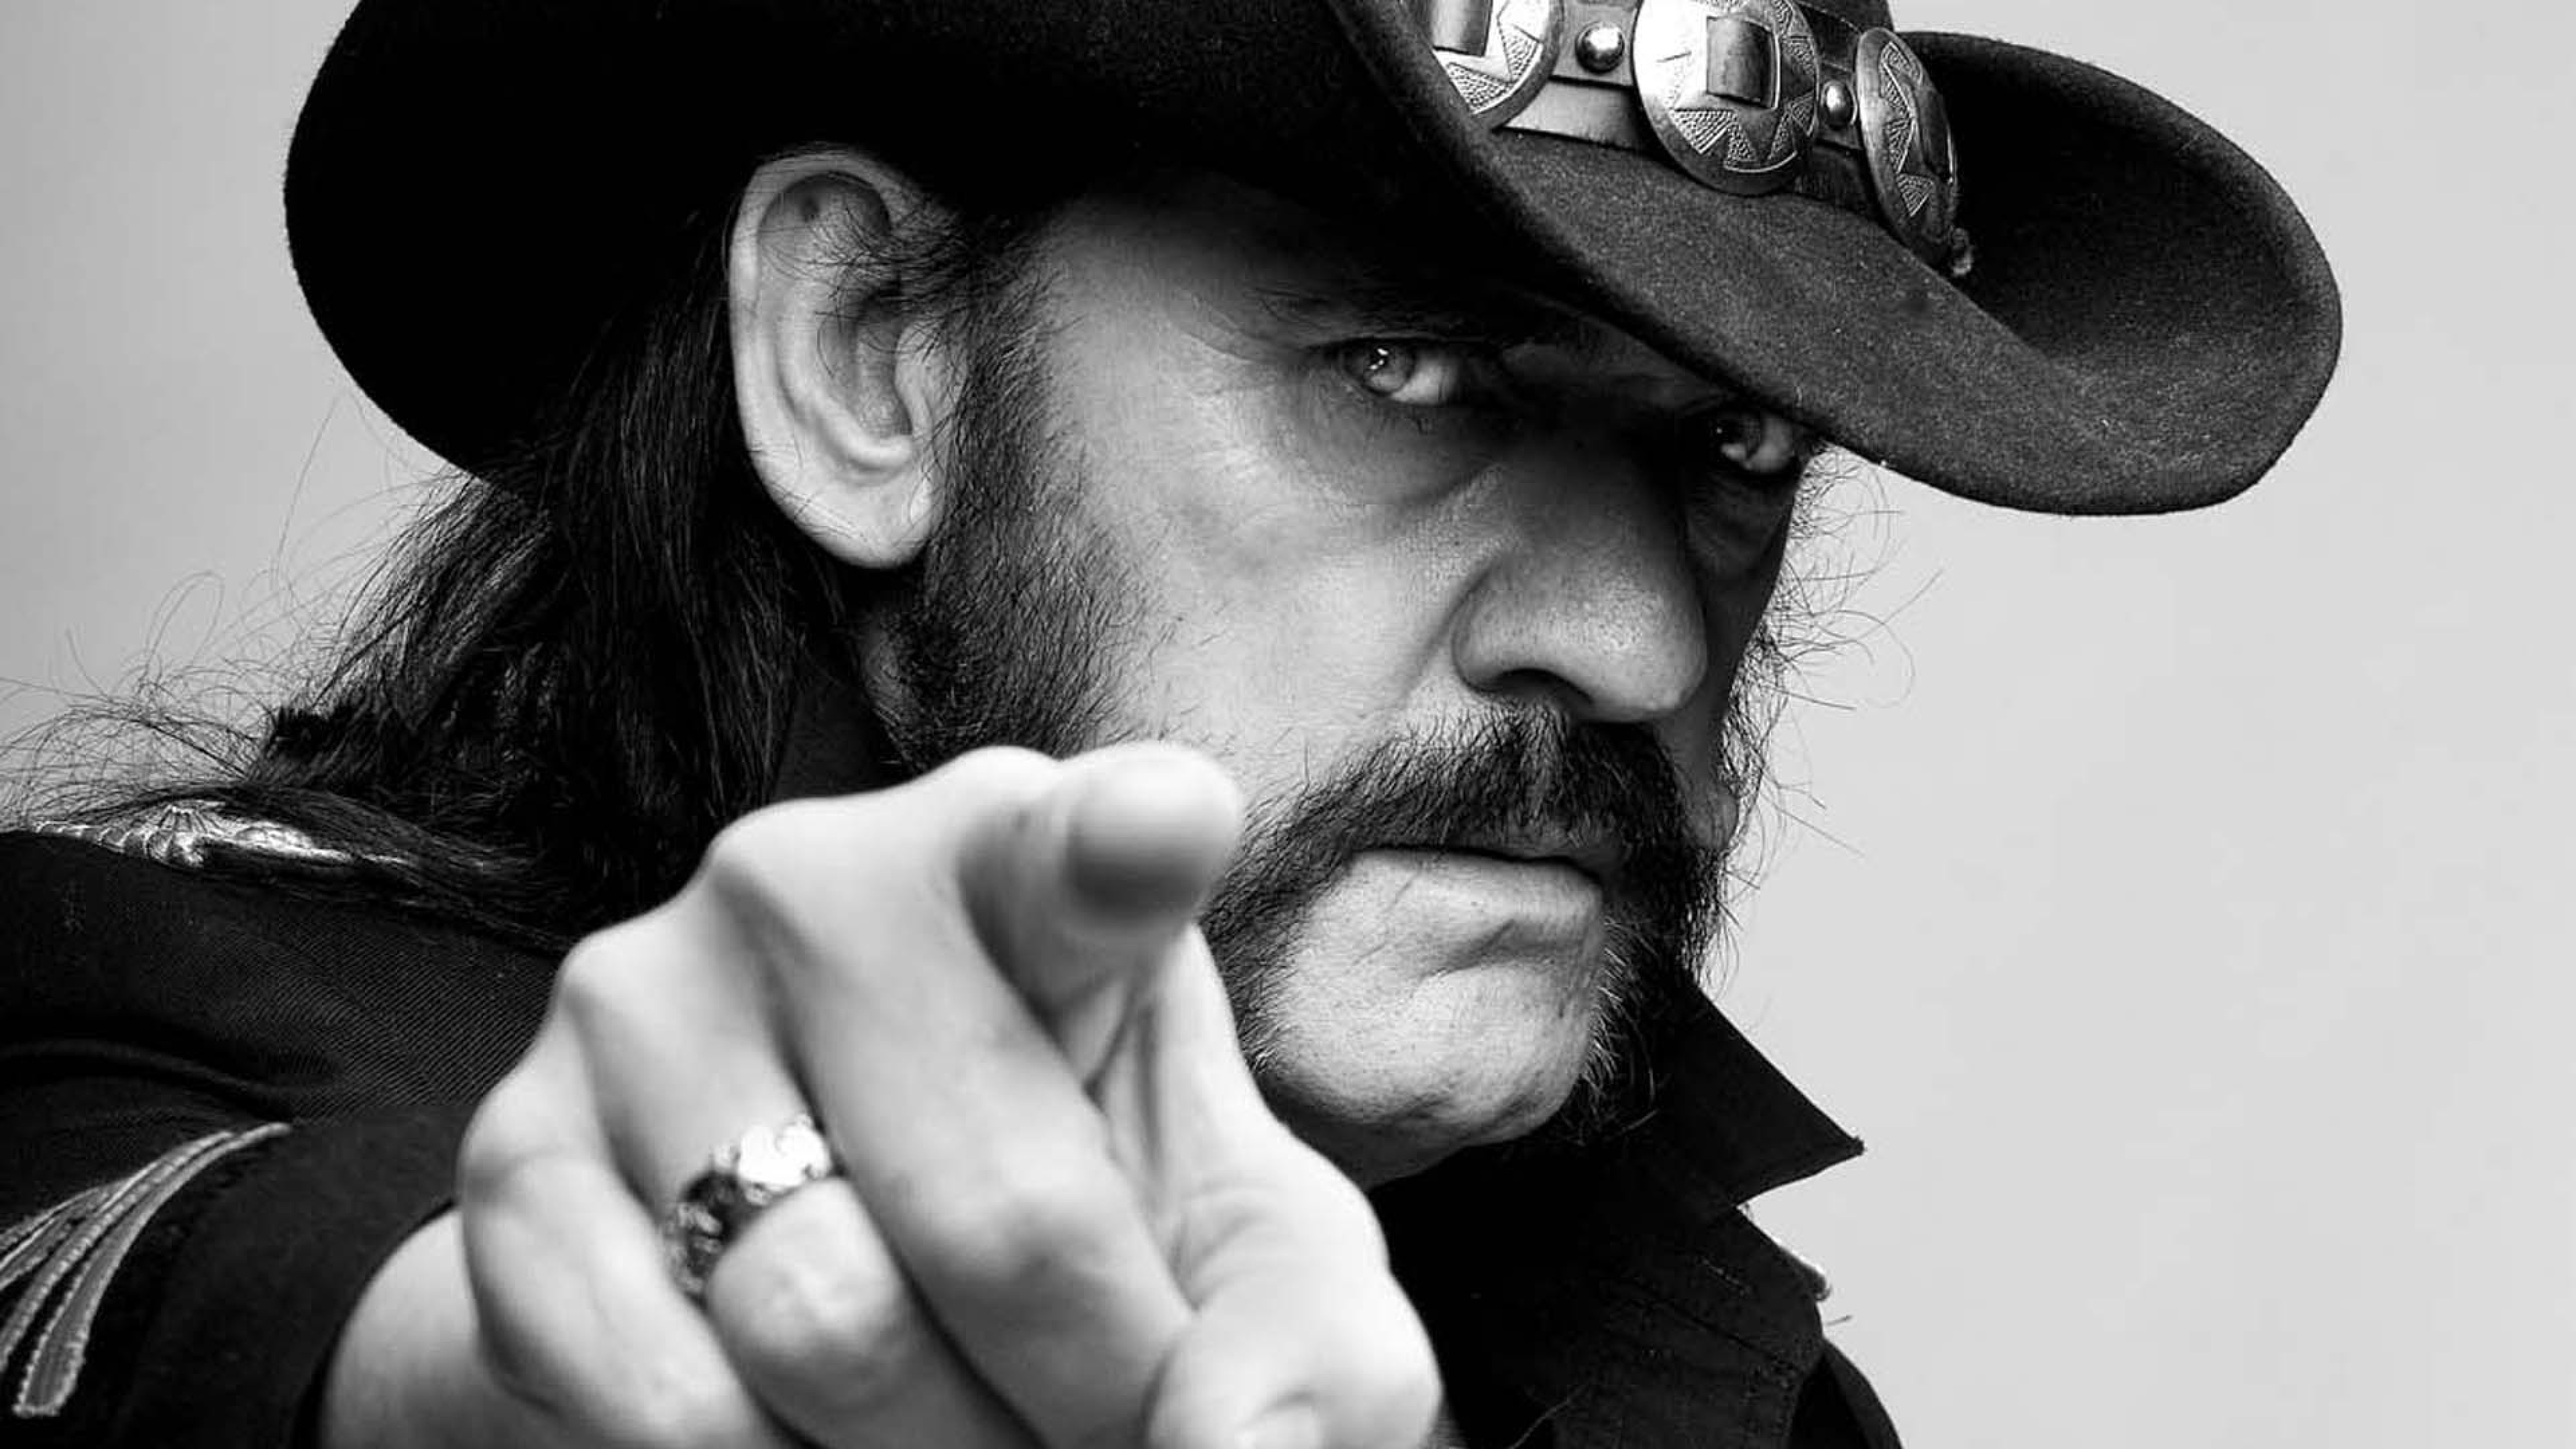 Wallpaper motorhead, hat, hand, finger, look